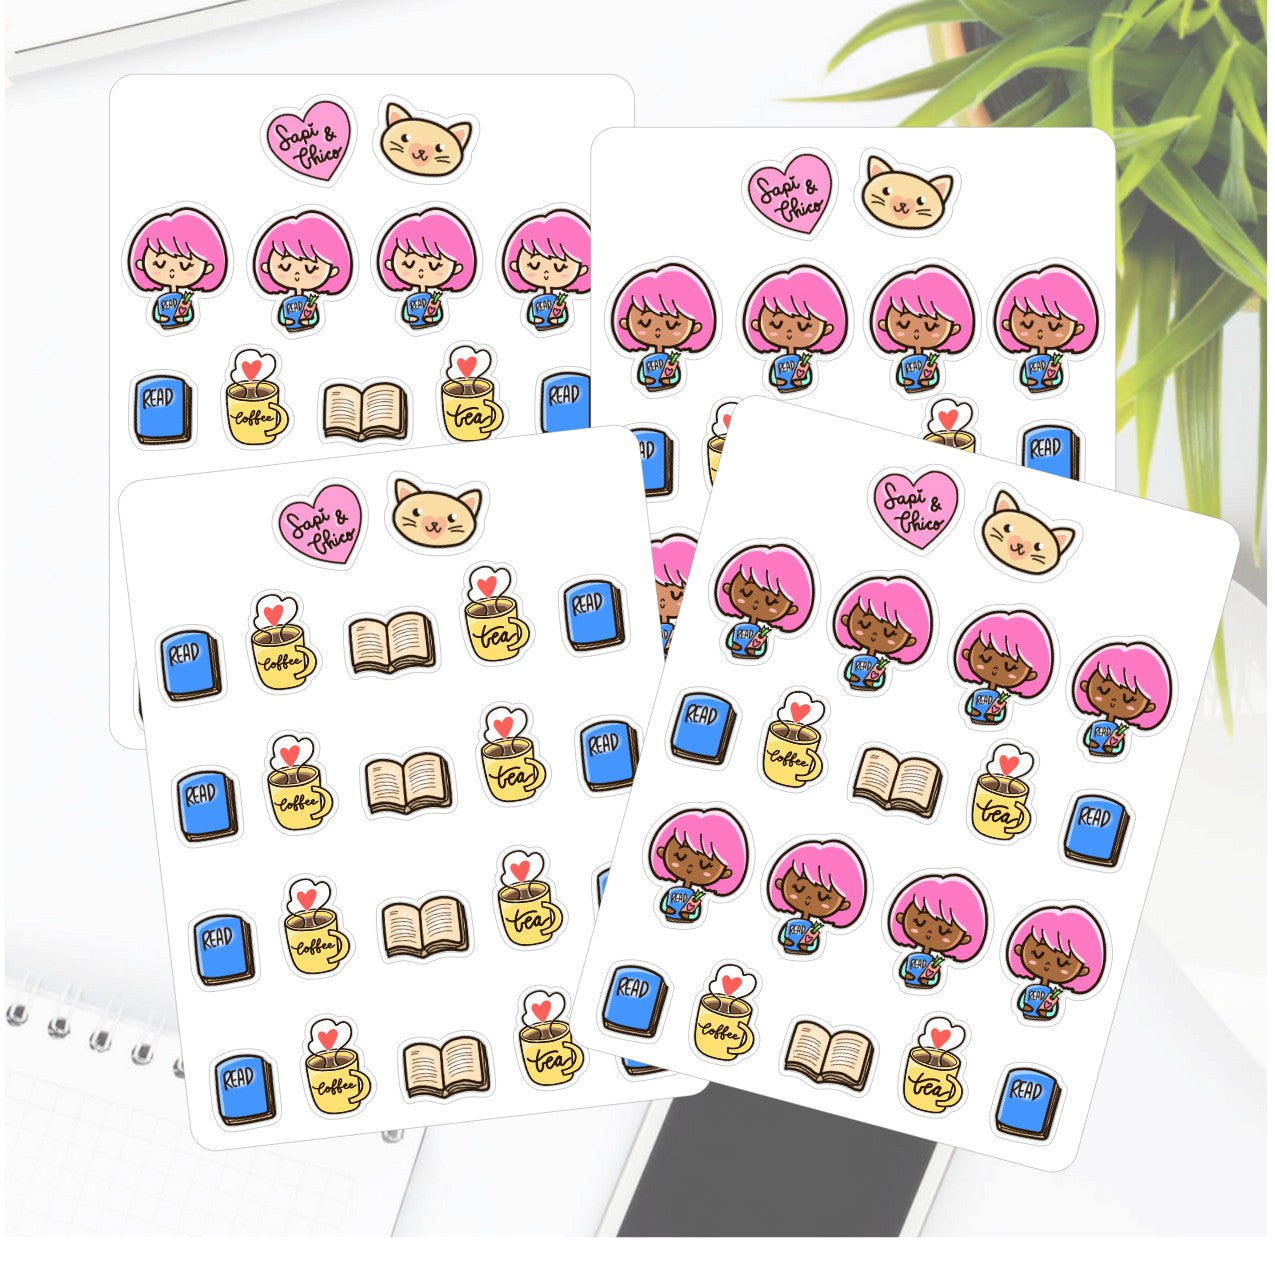 Books and Reading Sapi Planner Stickers